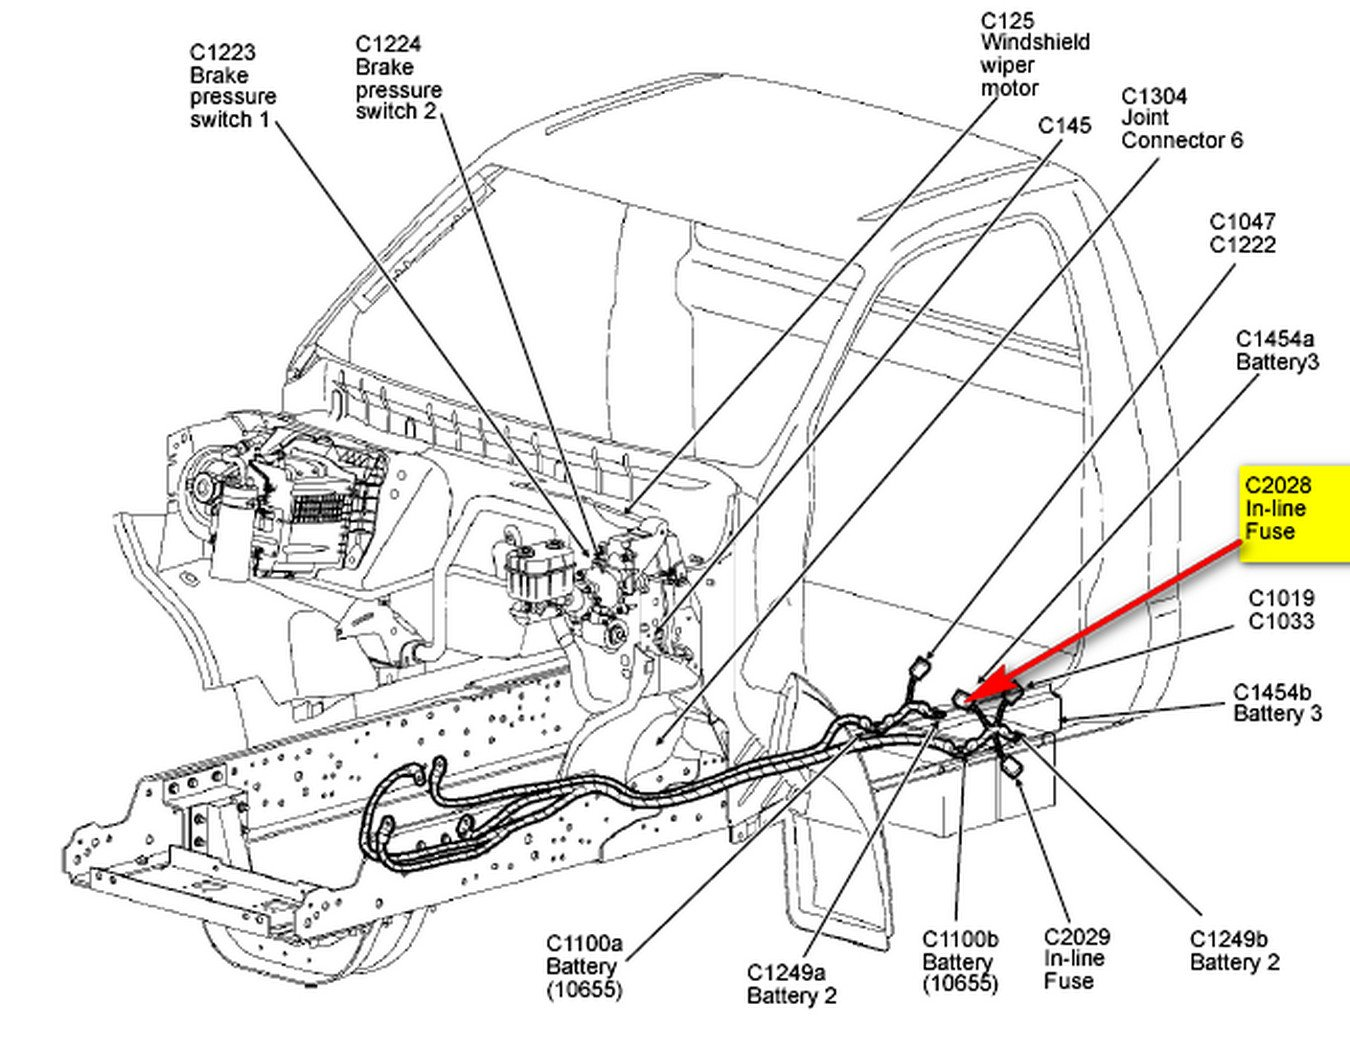 Fuse Diagram F750 Cat Reinvent Your Wiring 12 Ford F 350 Panel We Have A F650 2008 Model With Engine C7 No Rh Justanswer Com Types 2011 Ranger